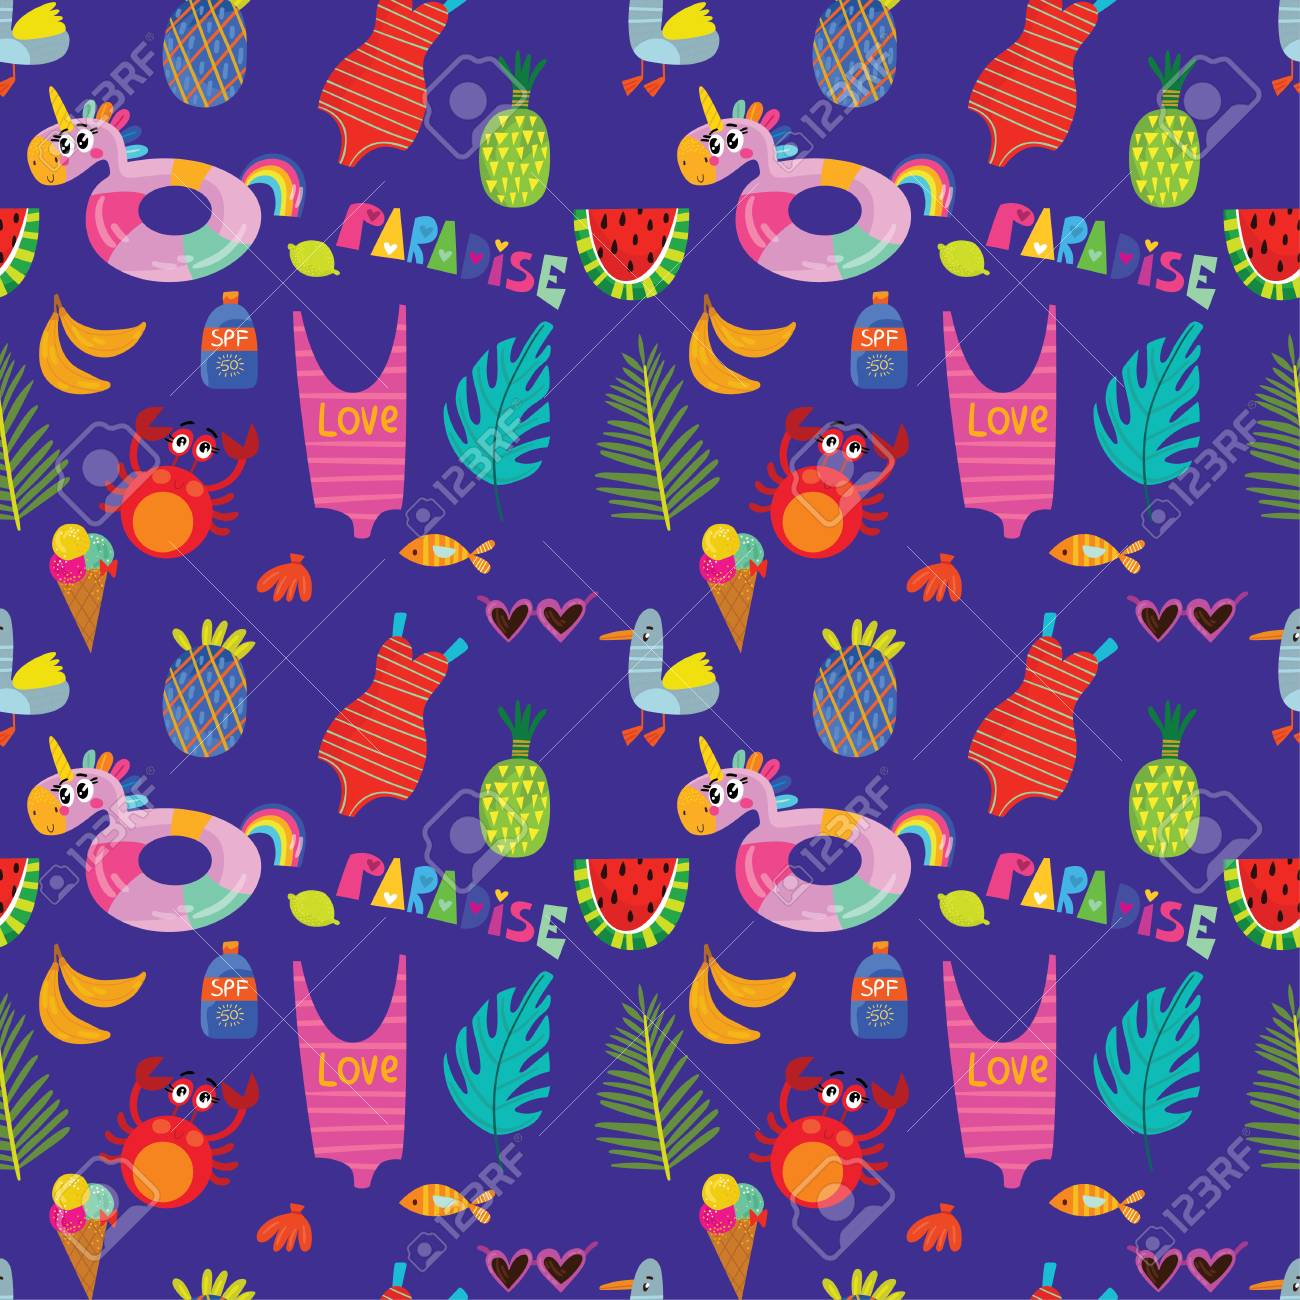 230a2cbc8600 Colorful seamless summer pattern with hand drawn elements -sunglasses